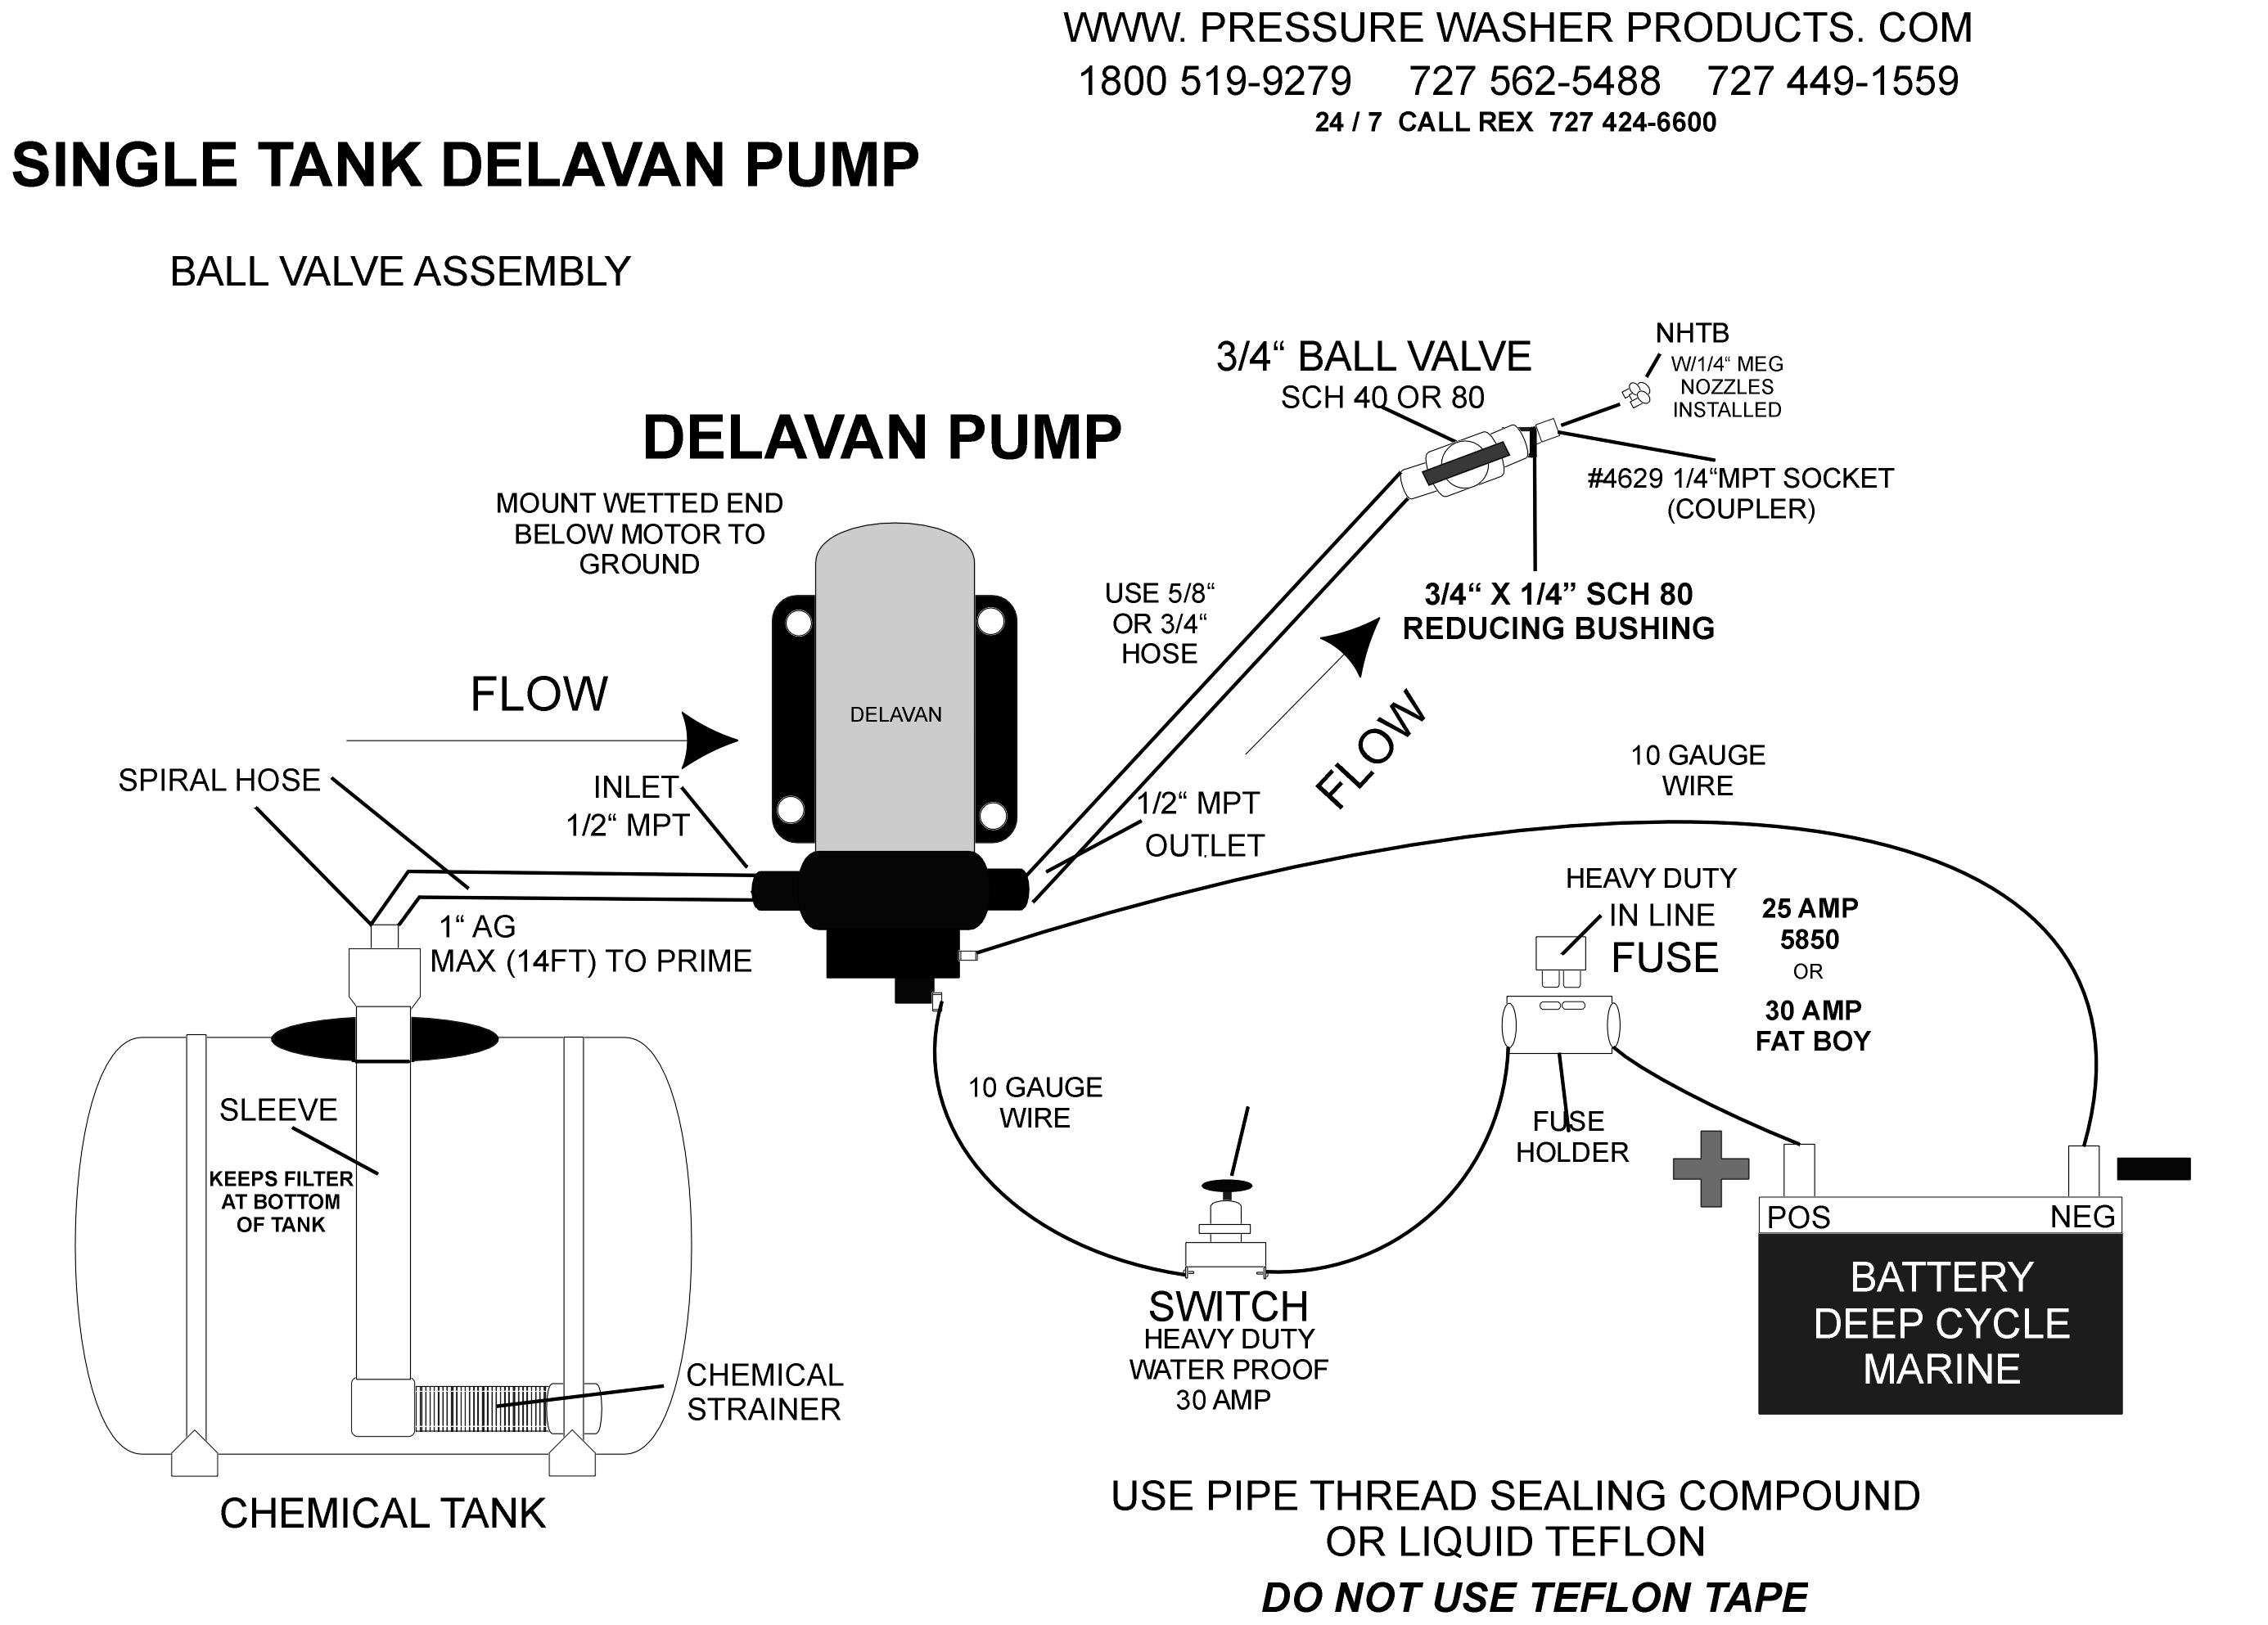 Delavan Wiring Diagram Library 12 Volt Start Softwashing Everflo 5500 Blue 5 8 200 Flex Tech